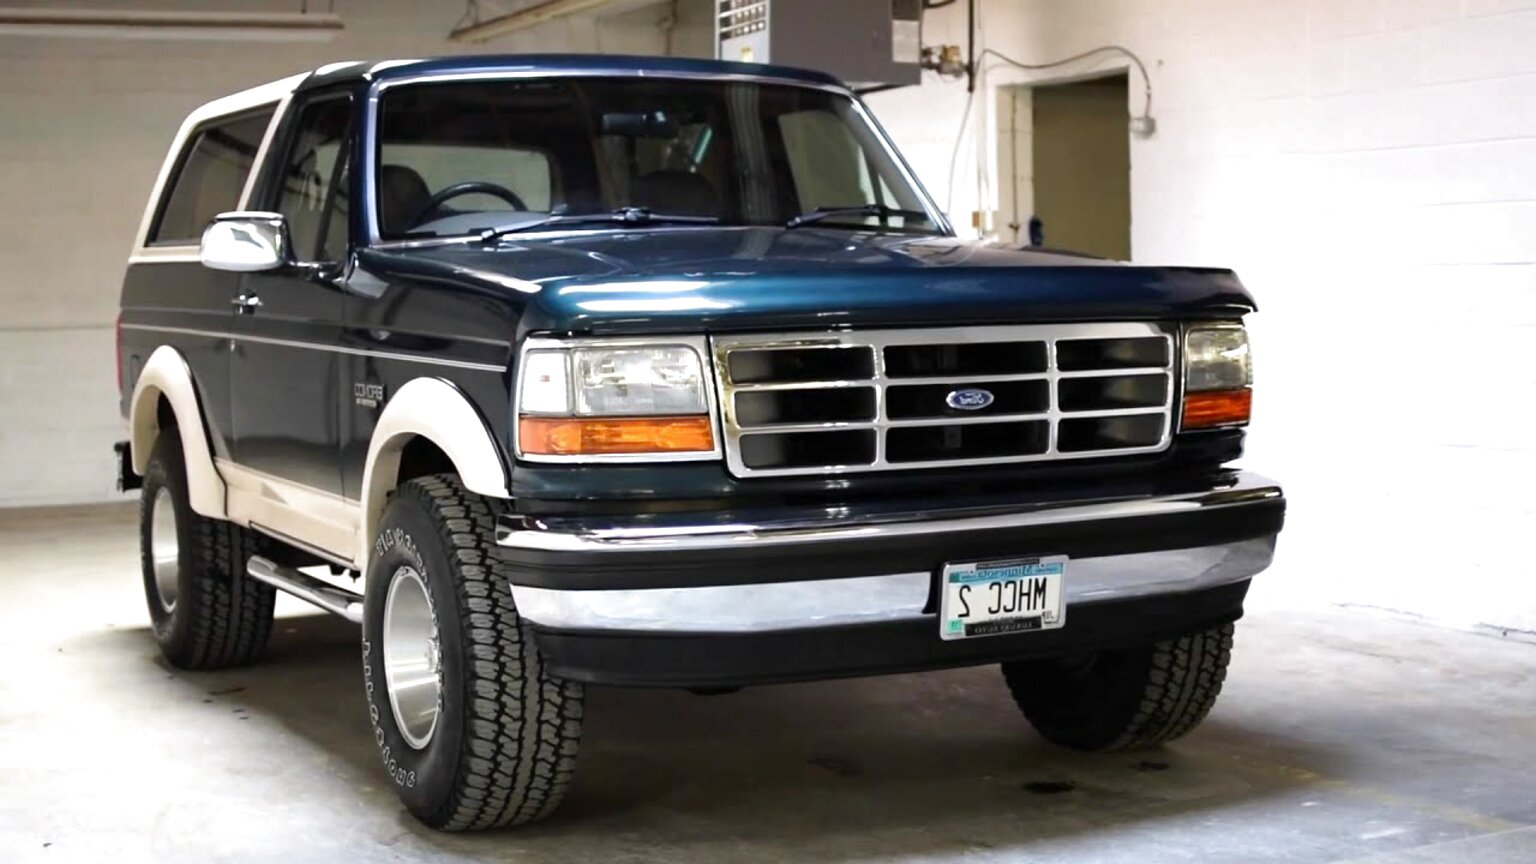 Ford Bronco Eddie Bauer For Sale Only 4 Left At 70